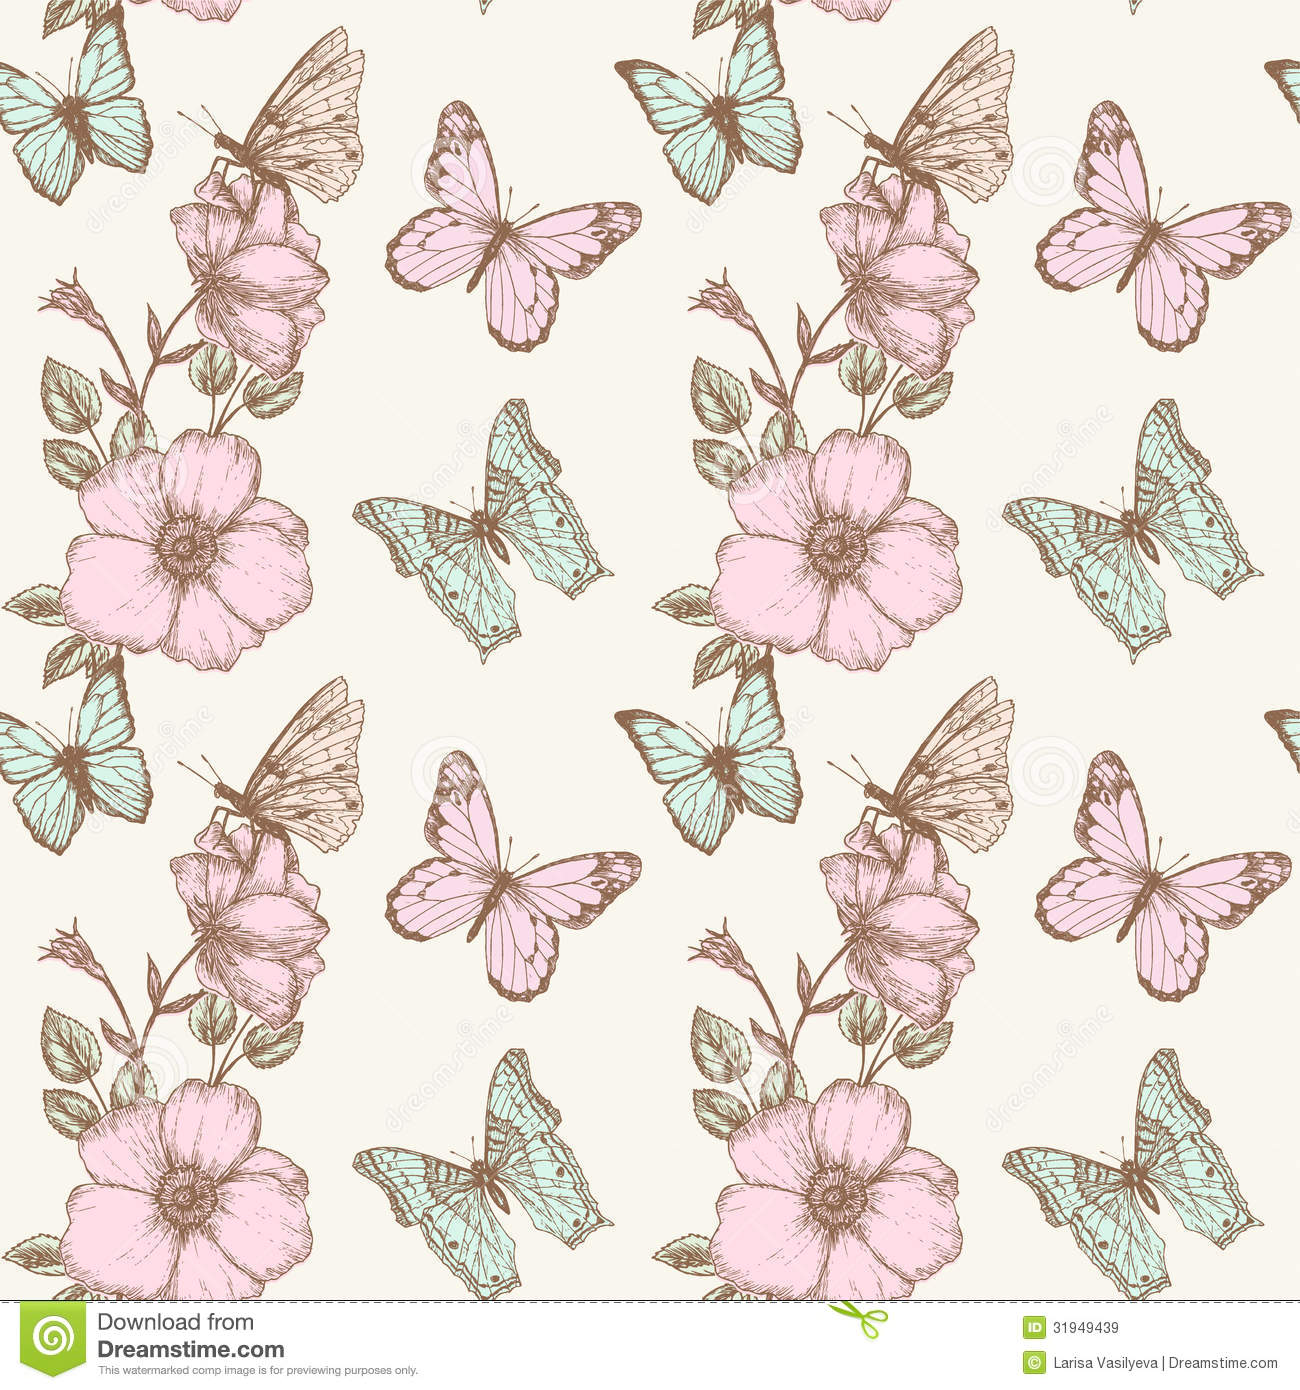 Butterfly Birthday Invitation Cards as adorable invitations ideas